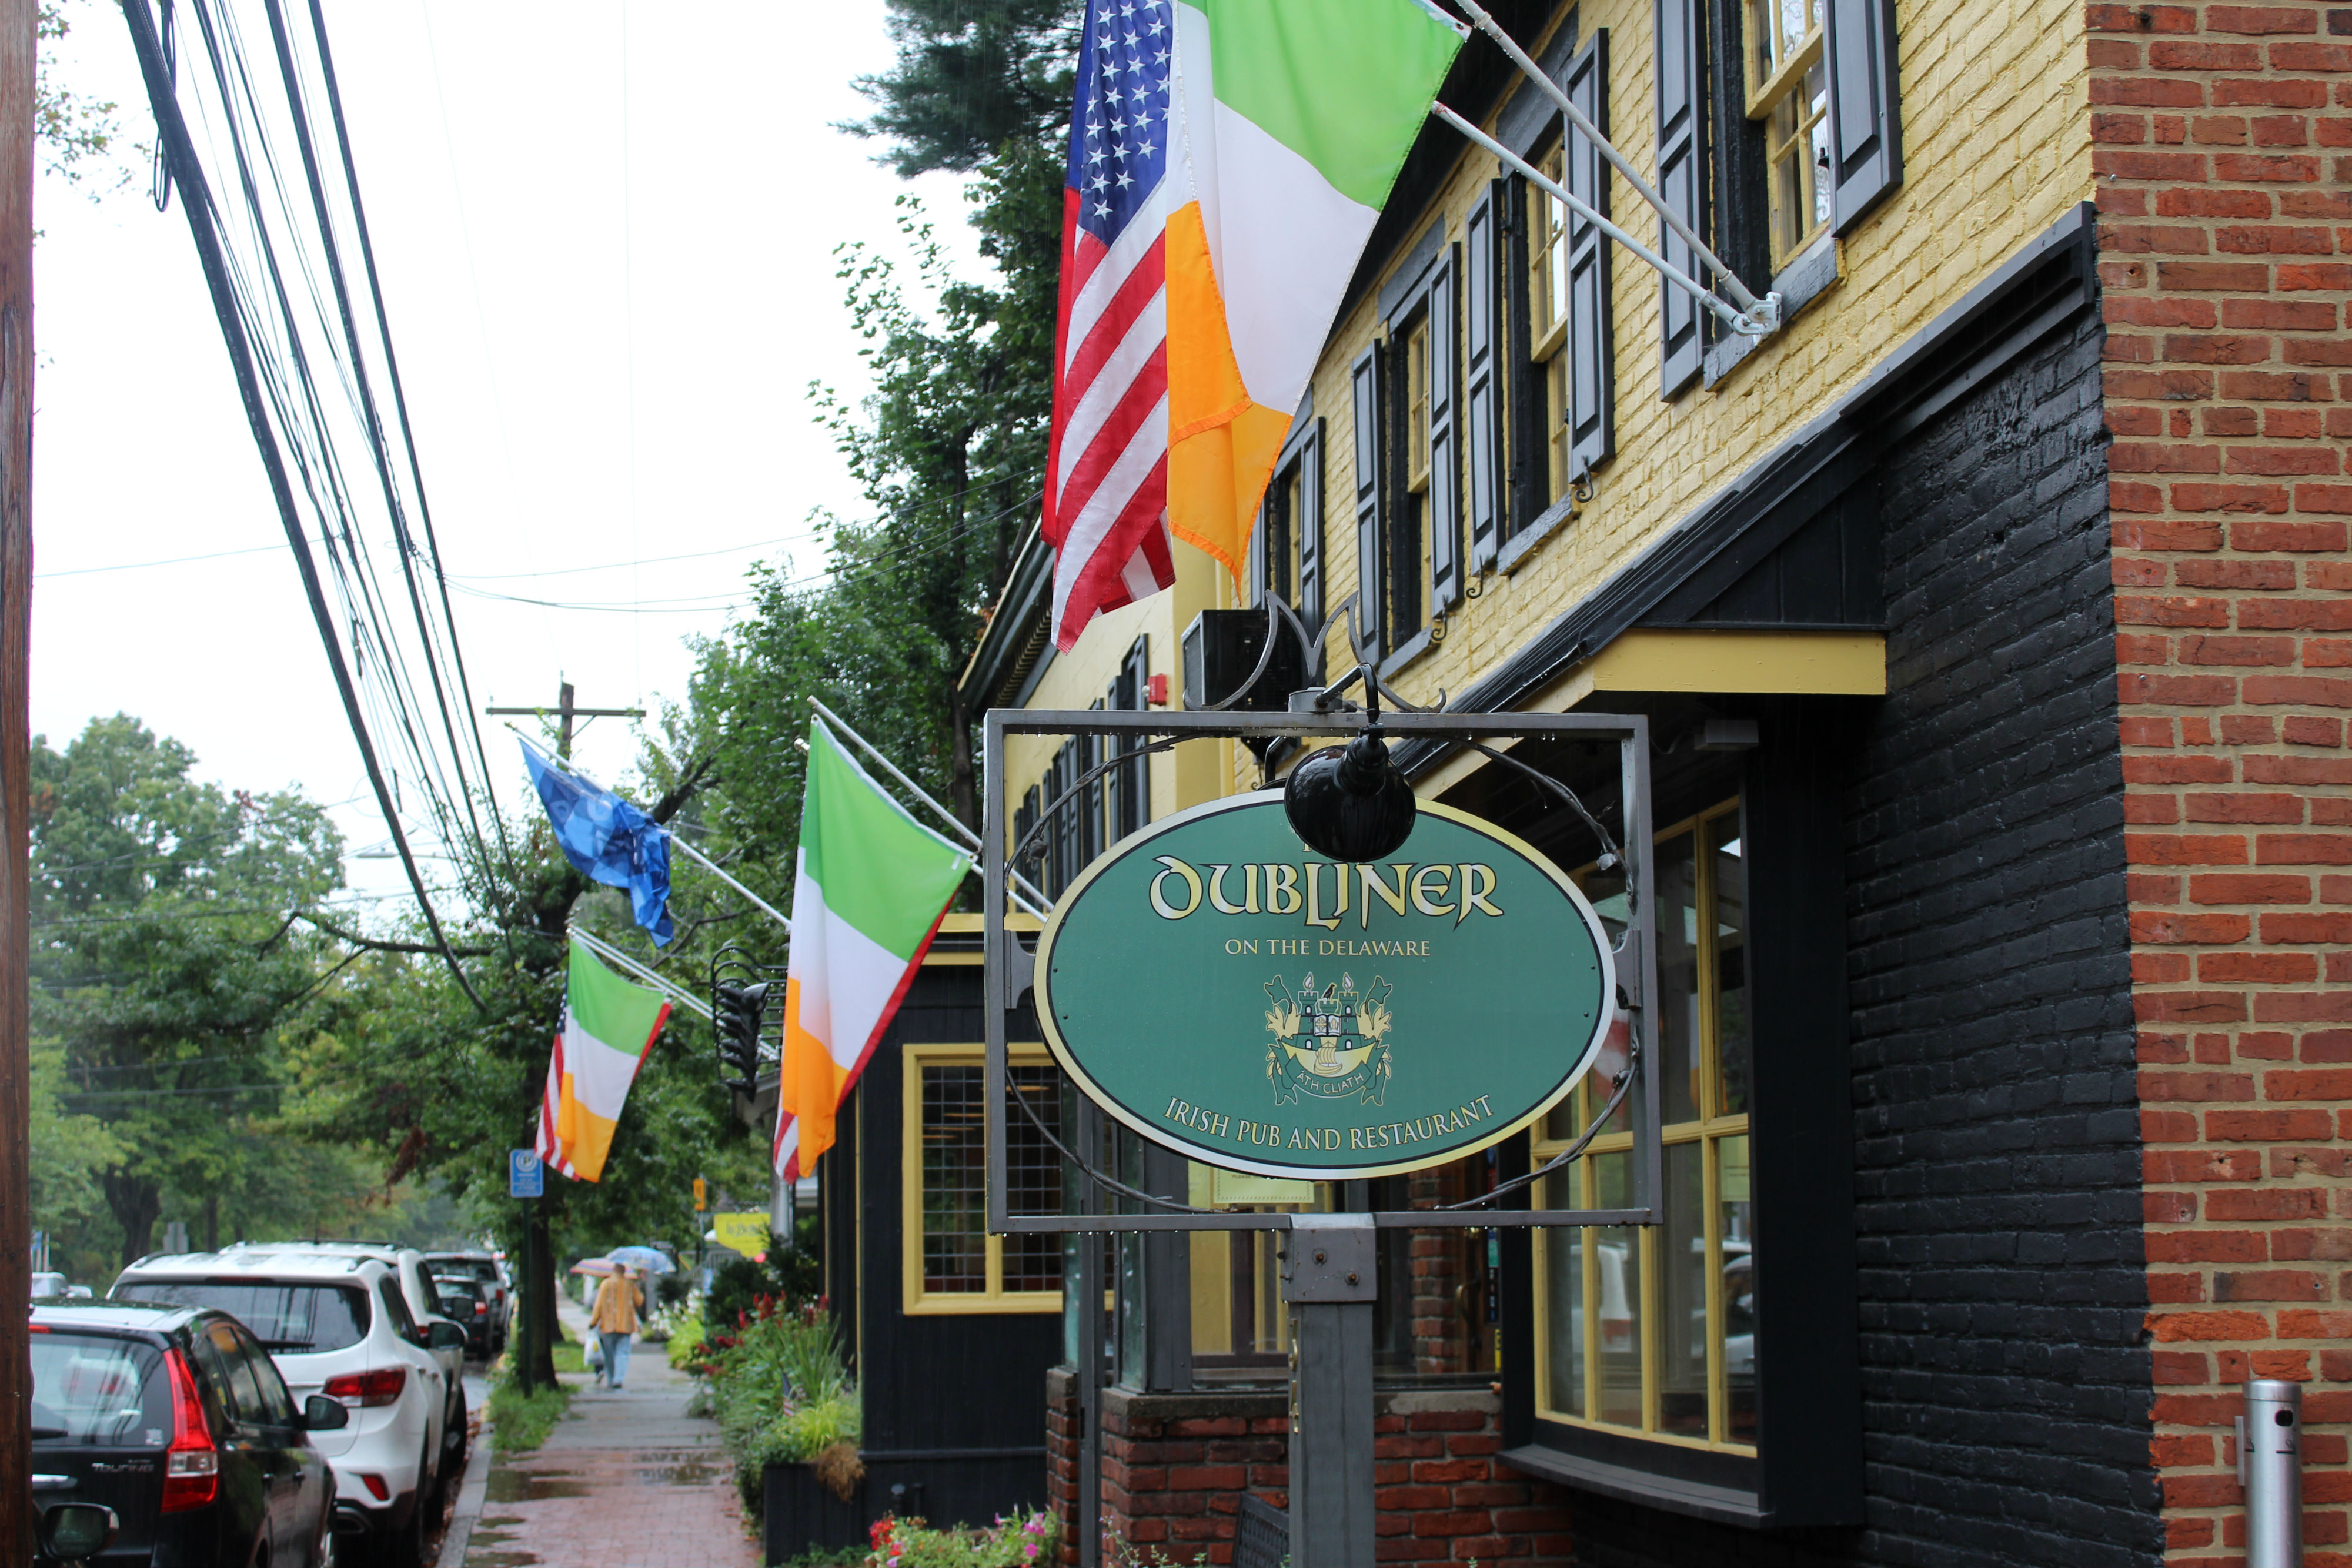 Stop by The Dubliner on the Delaware for some good beer and Irish pub fare.{&nbsp;}(Image: Julie Gallagher)<p></p>